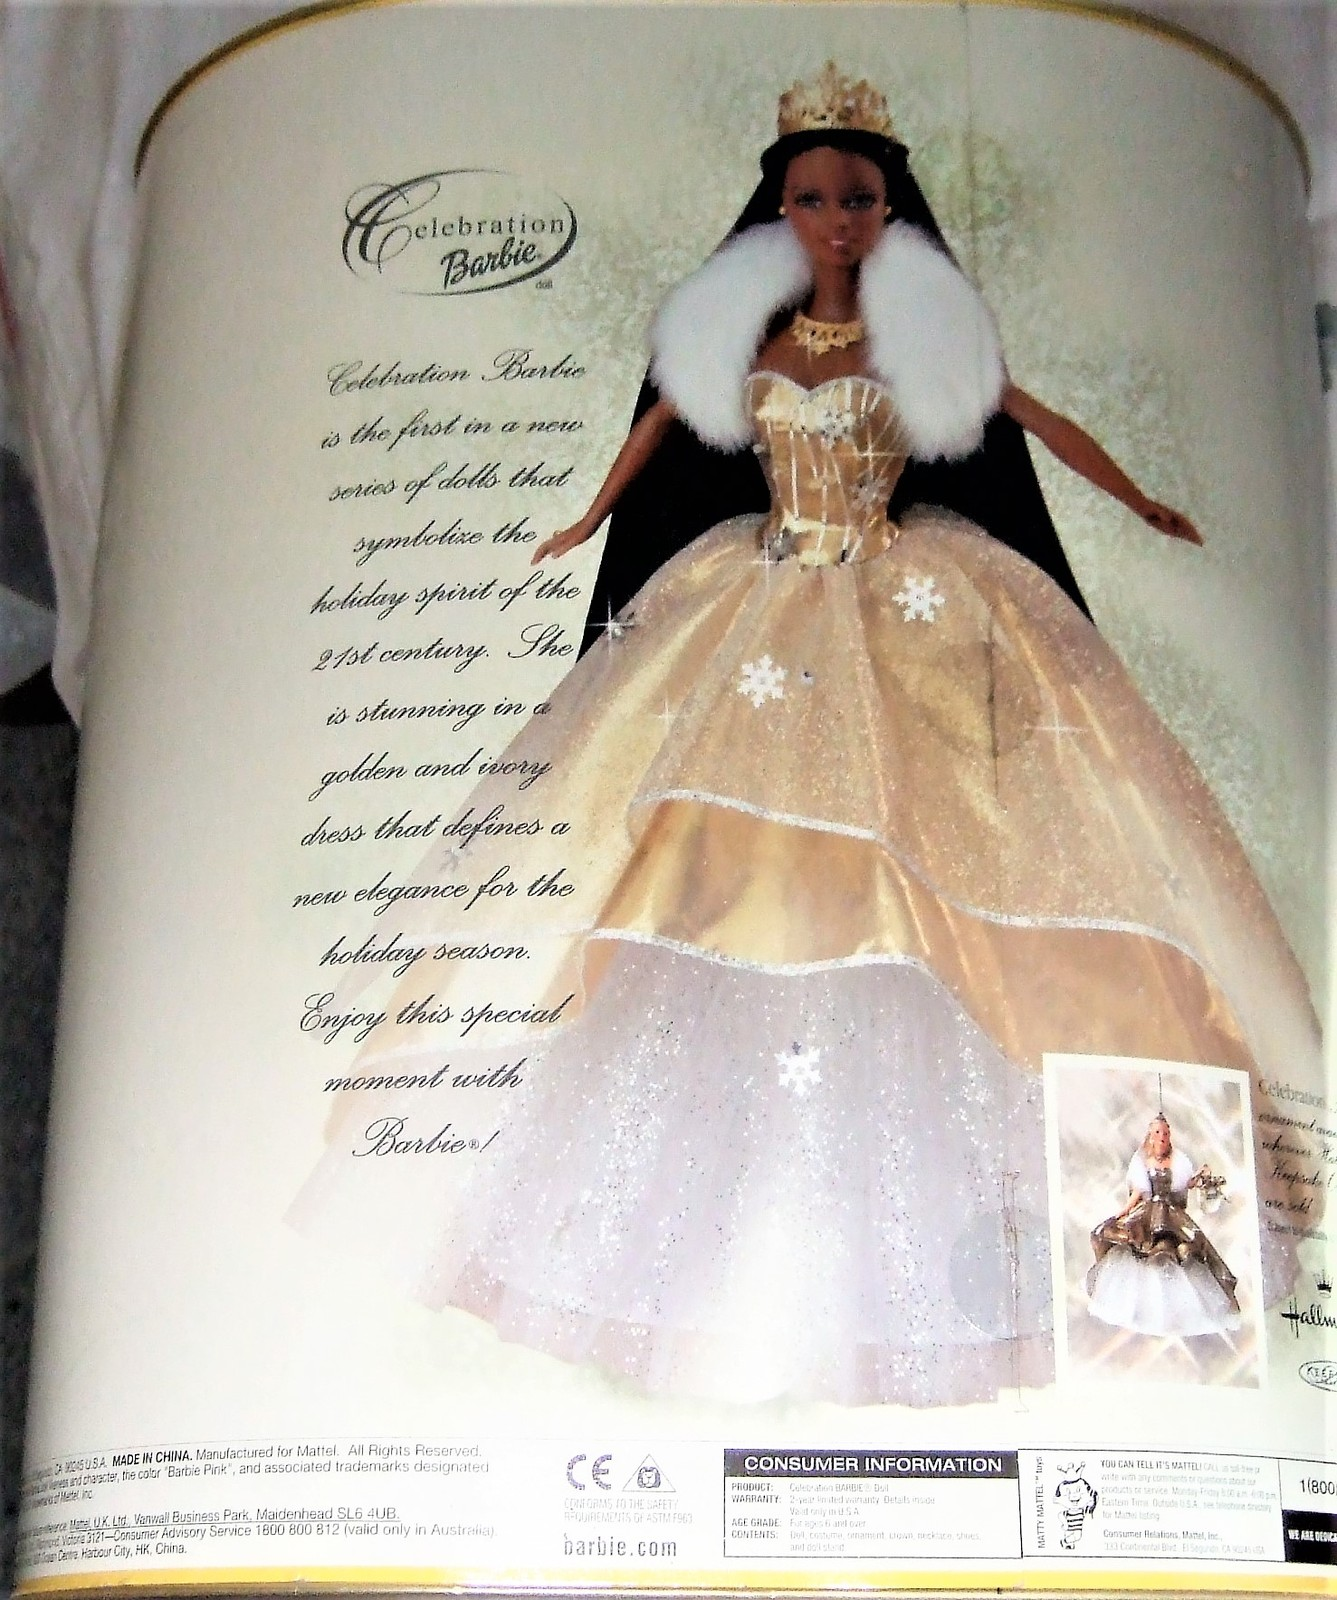 MATTEL BARBIE SPECIAL EDITION 2000 CELEBRATION BARBIE DOLL AFRICAN AMERICAN AA